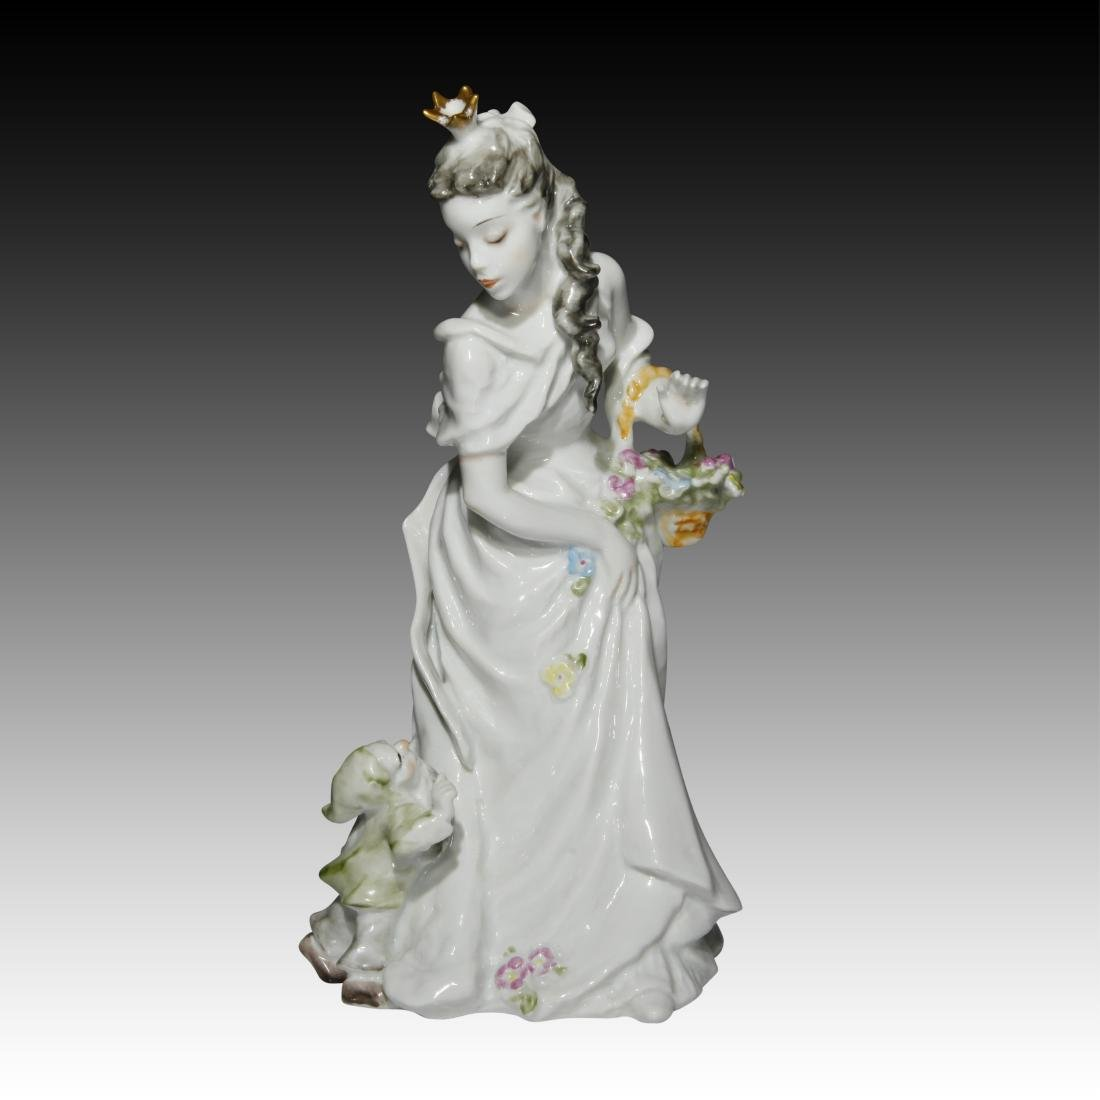 Rosenthal Figurine of Snow White with a Dwarf